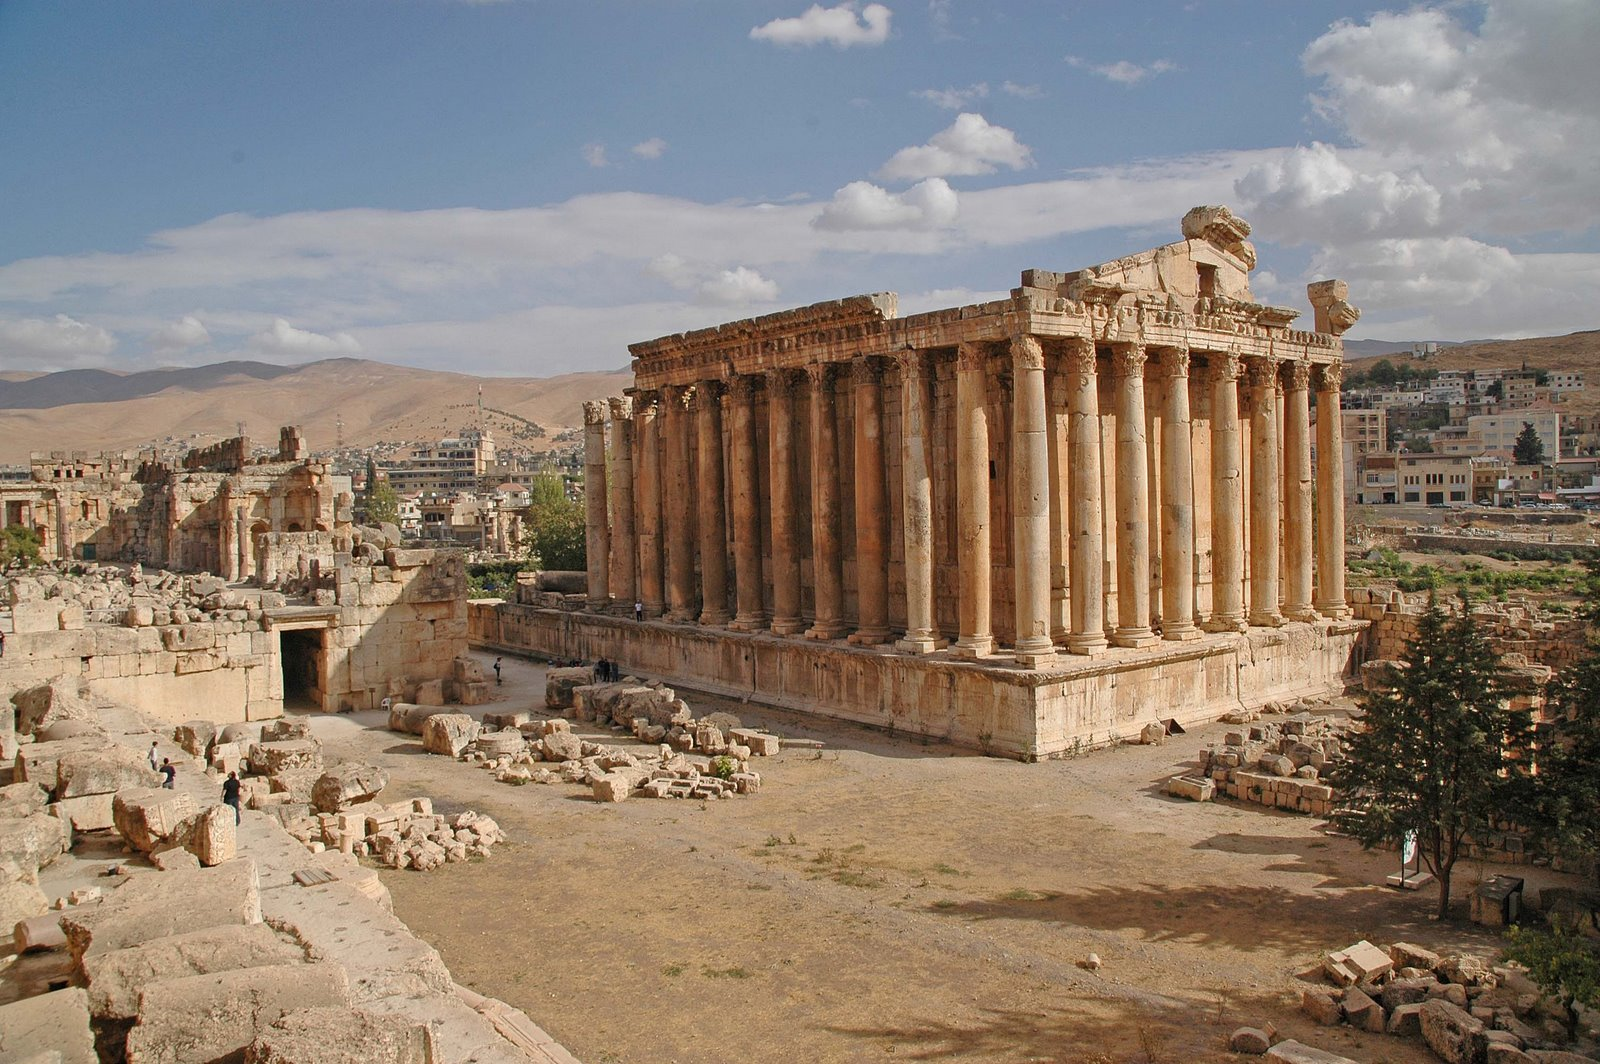 Temple of Jupiter Baalbek, Temple of Jupiter Baalbek « UFO-Contact News